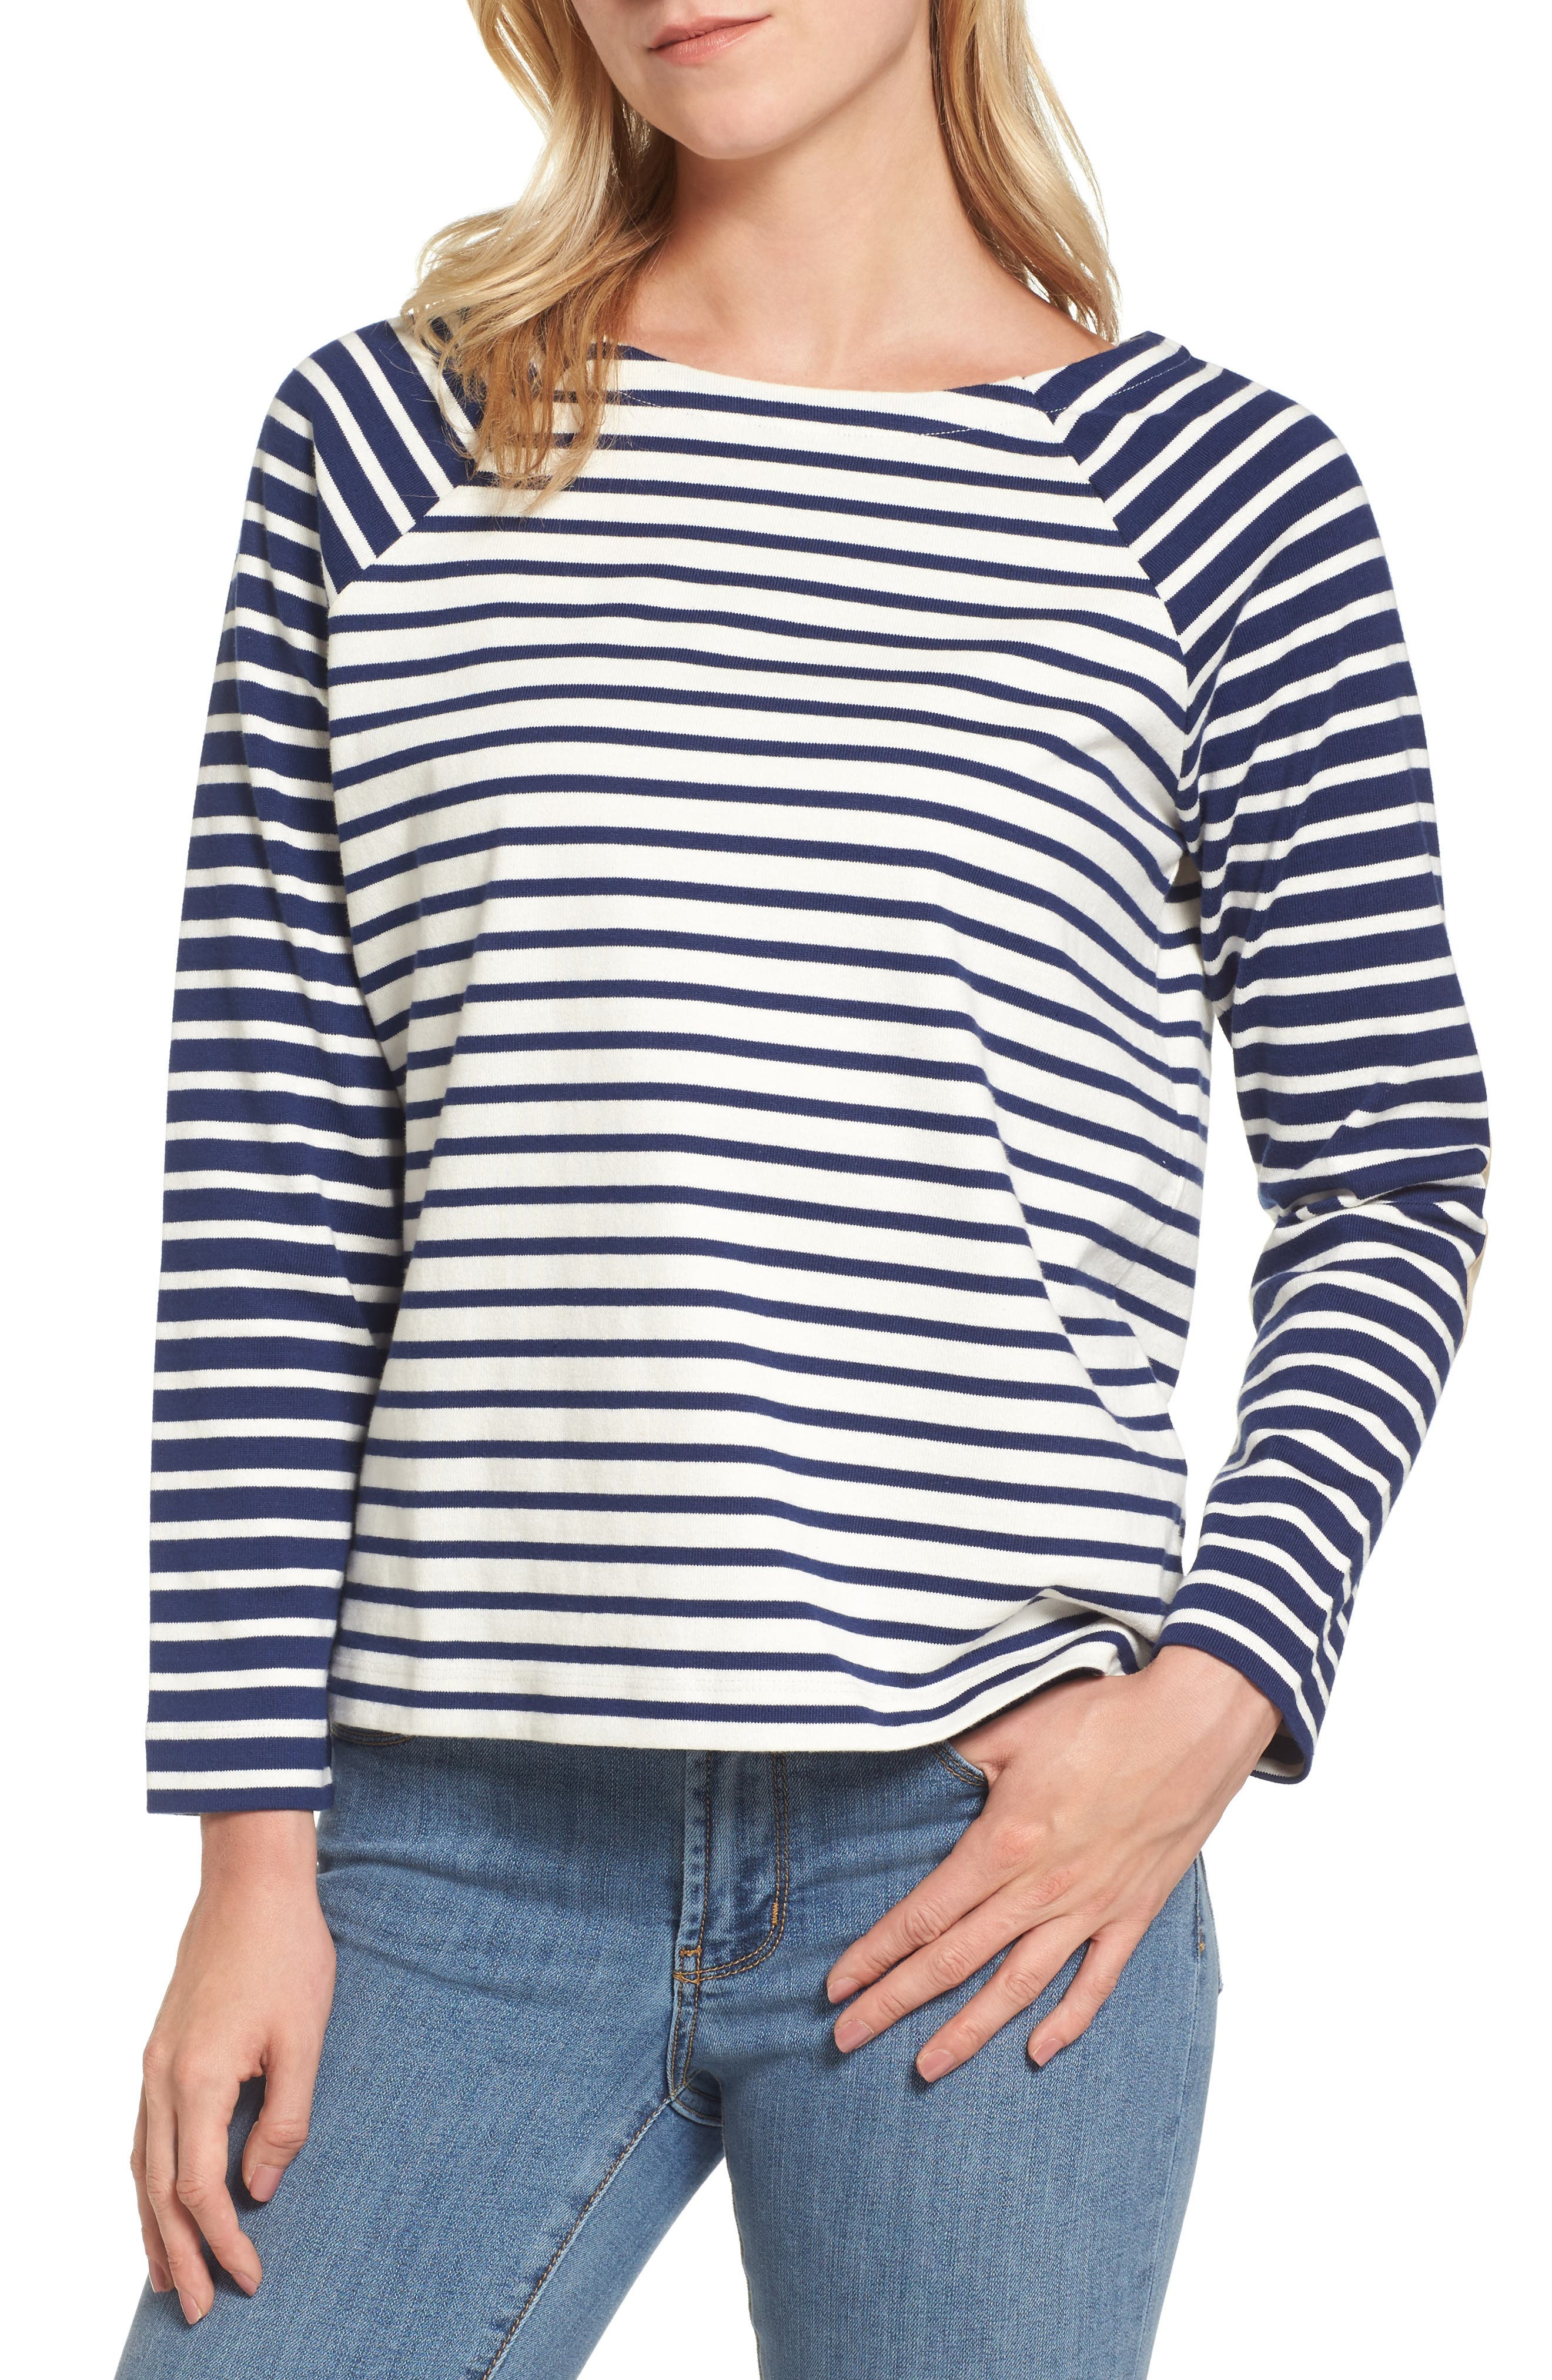 vineyard vines Elbow Patch Mixed Stripe Top